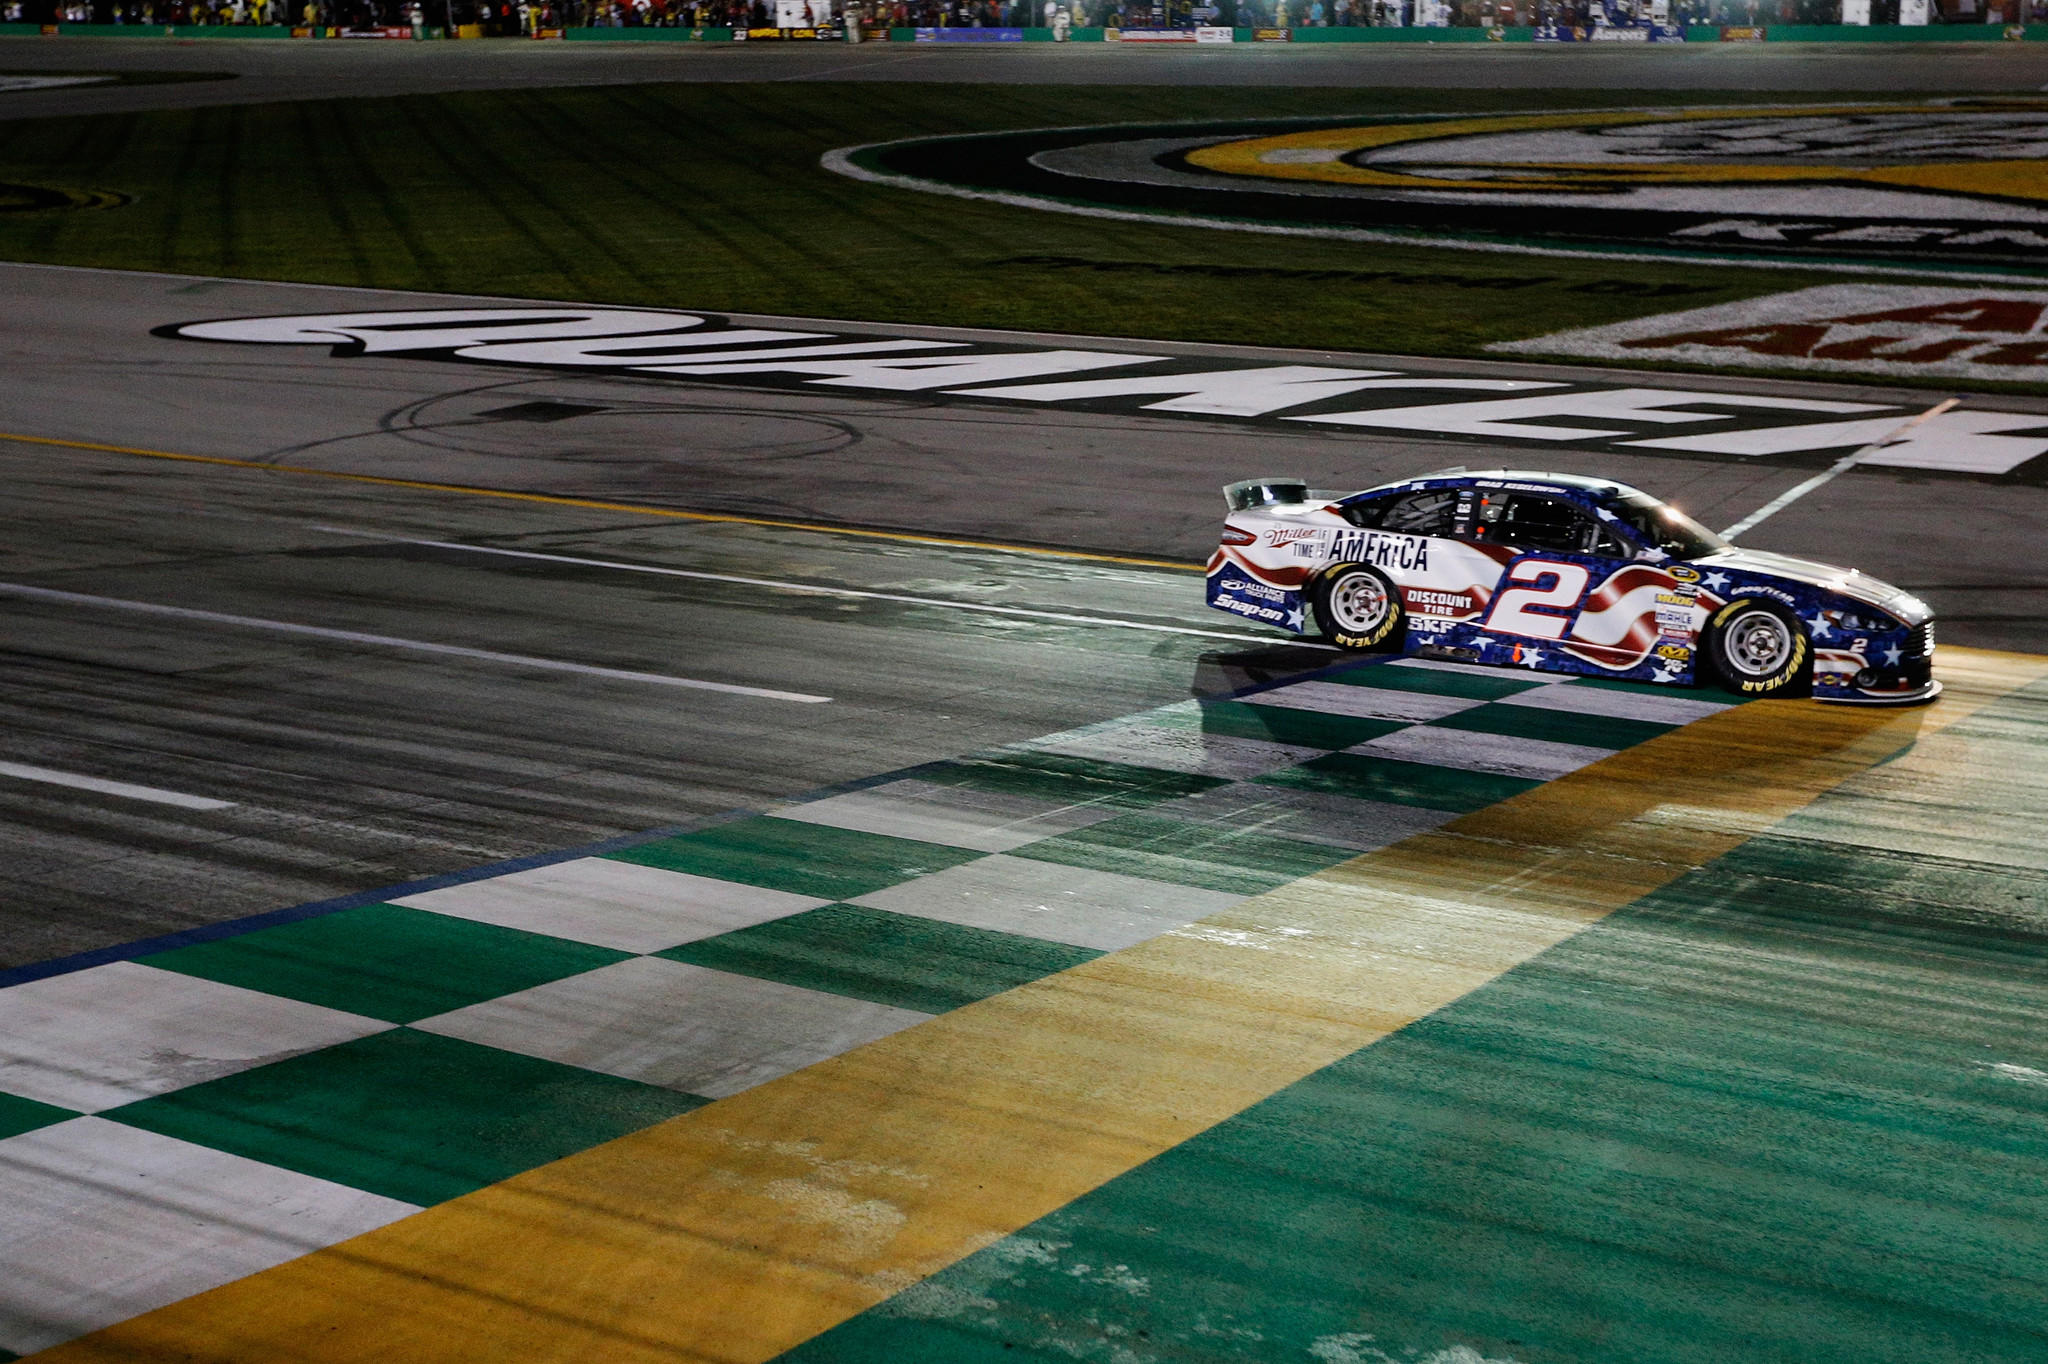 Brad Keselowski, driver of the #2 Miller Lite Ford, takes the checkered flag to win the NASCAR Sprint Cup Series Quaker State 400 presented by Advance Auto Parts at Kentucky Speedway.